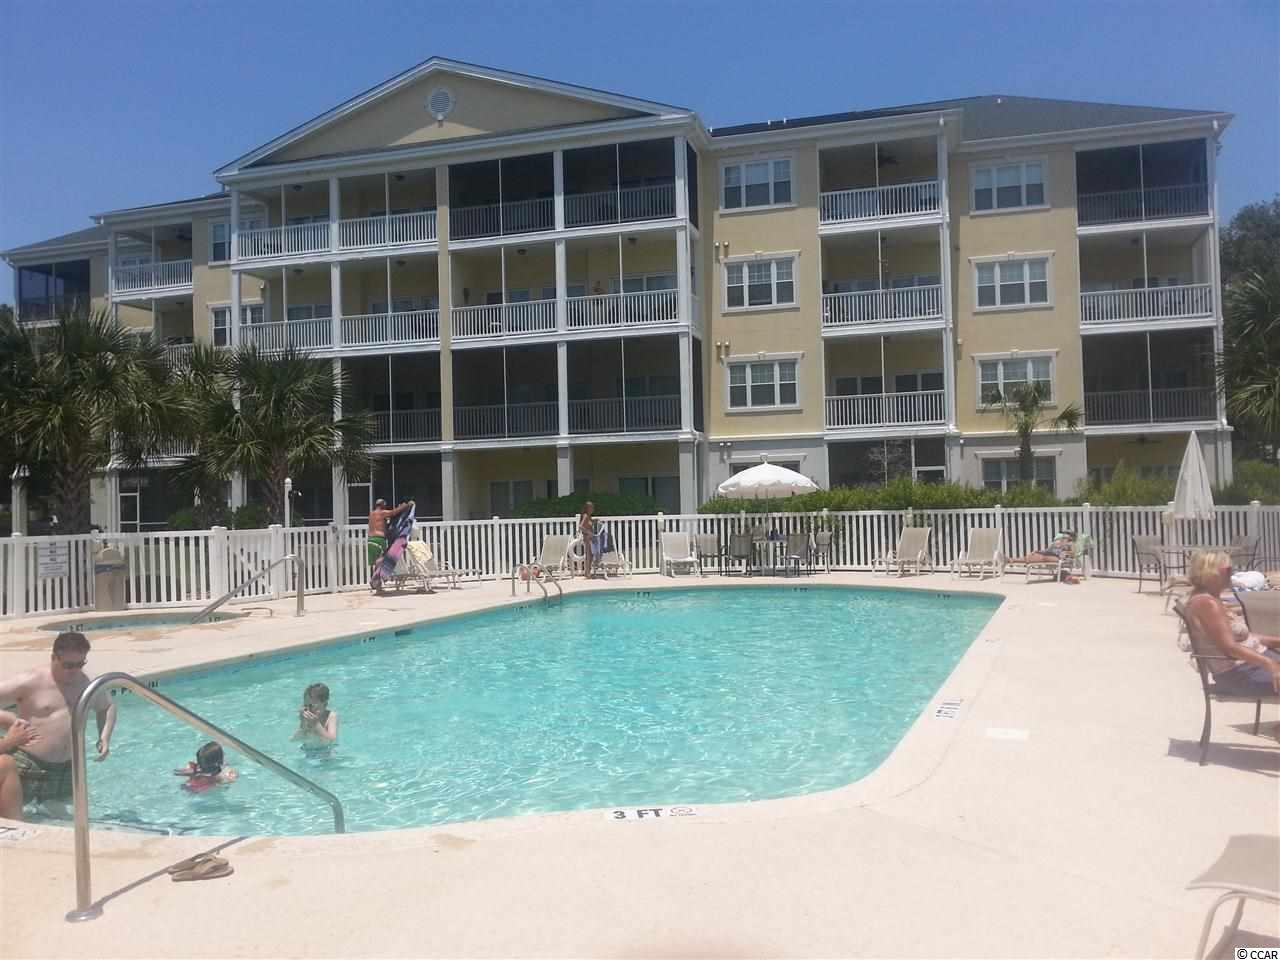 Condo For Sale At Ocean Keyes In North Myrtle Beach South Carolina Unit 1502 Listing Mls